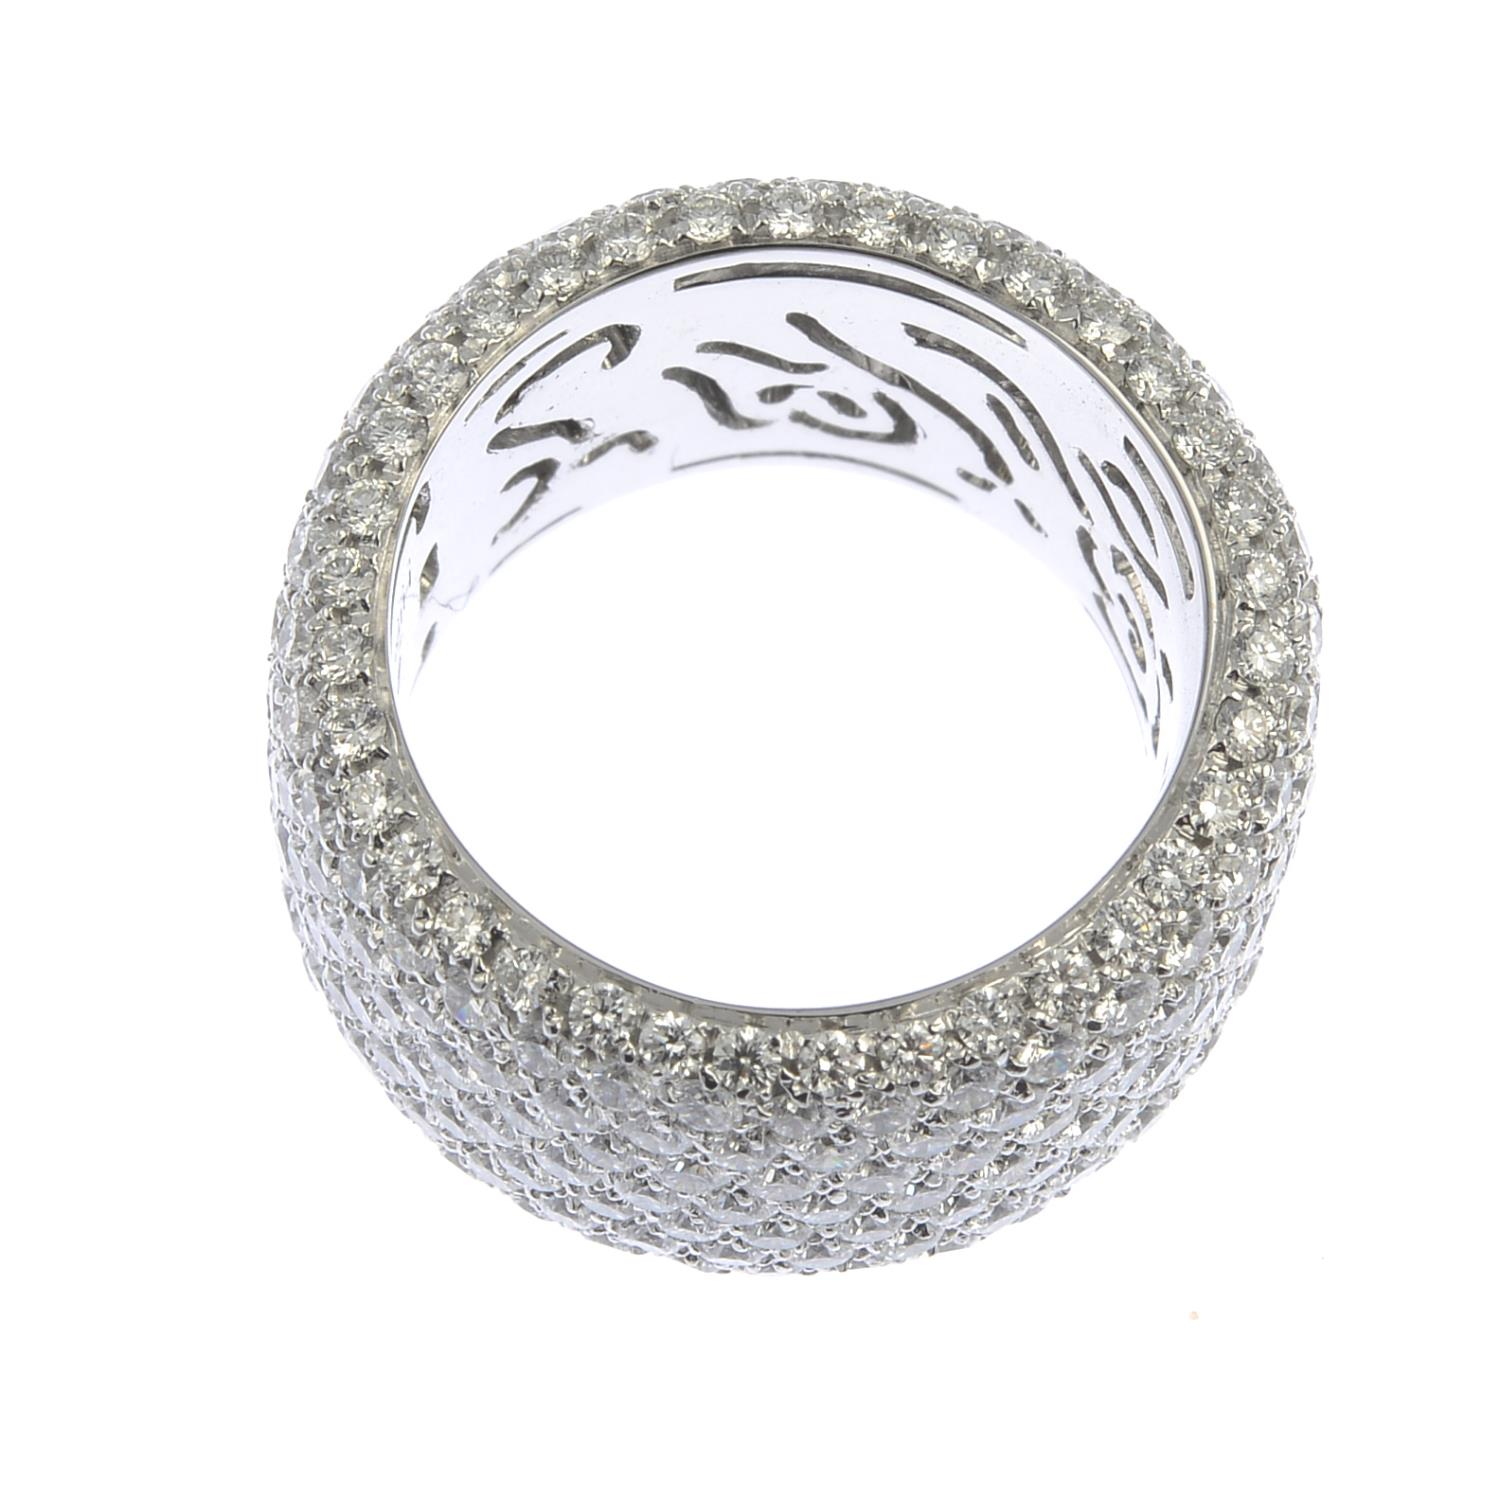 Lot 140 - A pave-set diamond full circle eternity ring,